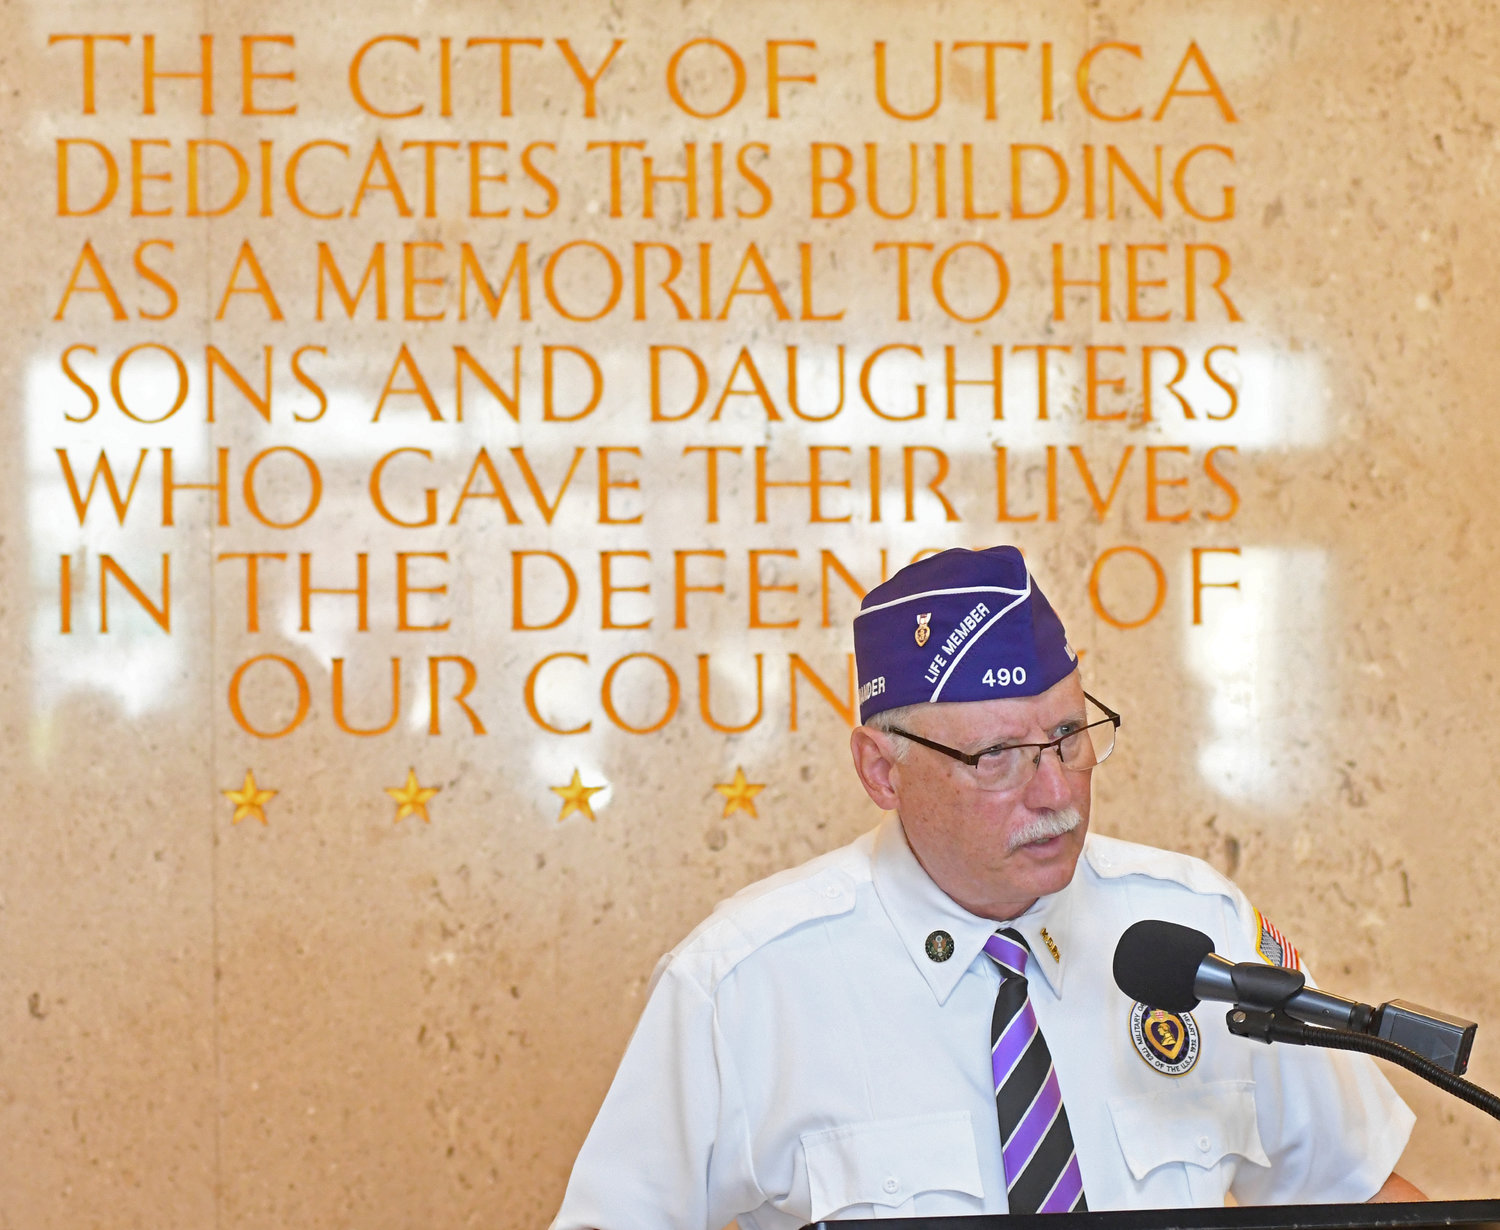 Joe Fraccola commander of the Central NY Chapter 490 of the Military Order of the Purple Heart speaks at the Adirondack Bank Center Purple Heart observance Wednesday afternoon.